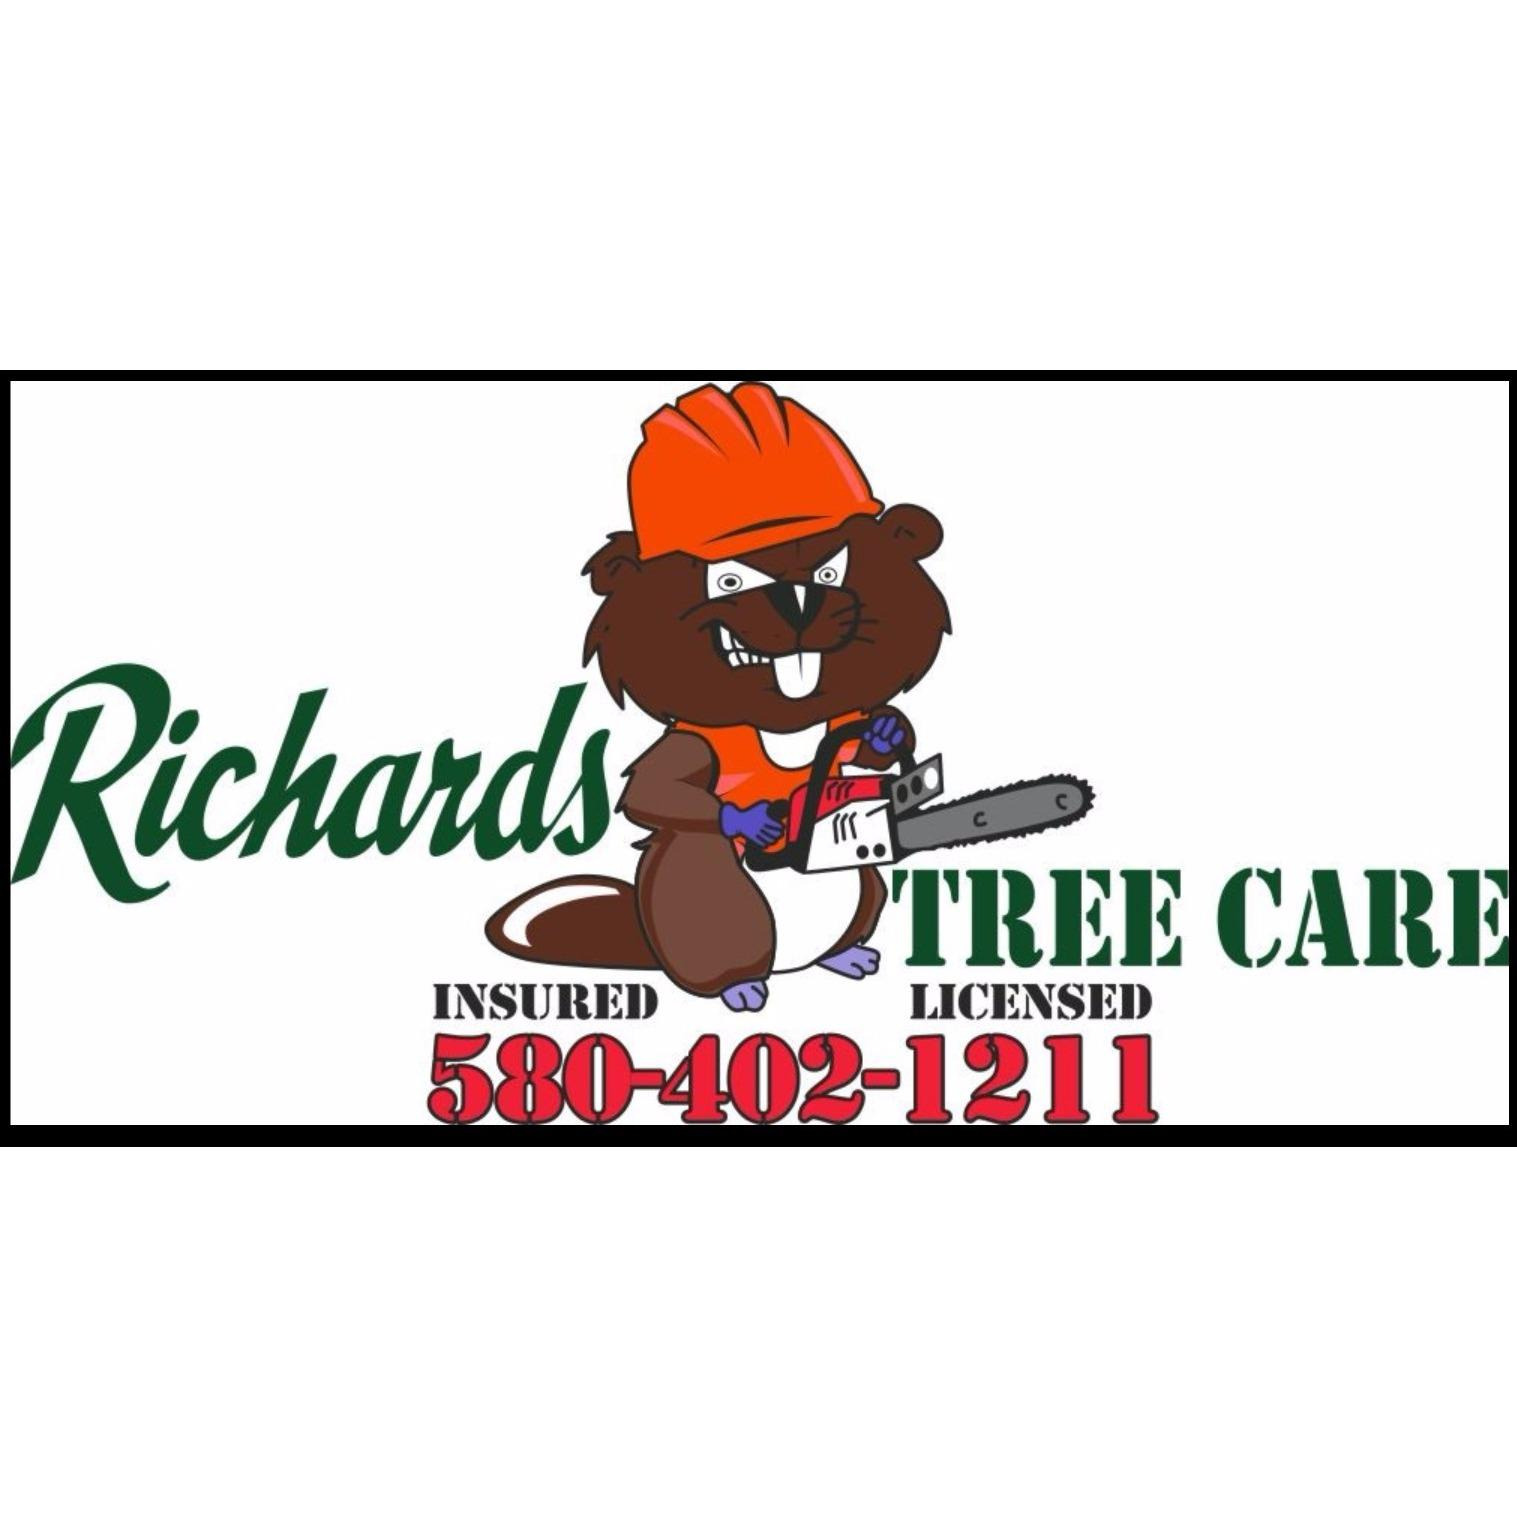 Richard's Tree Care